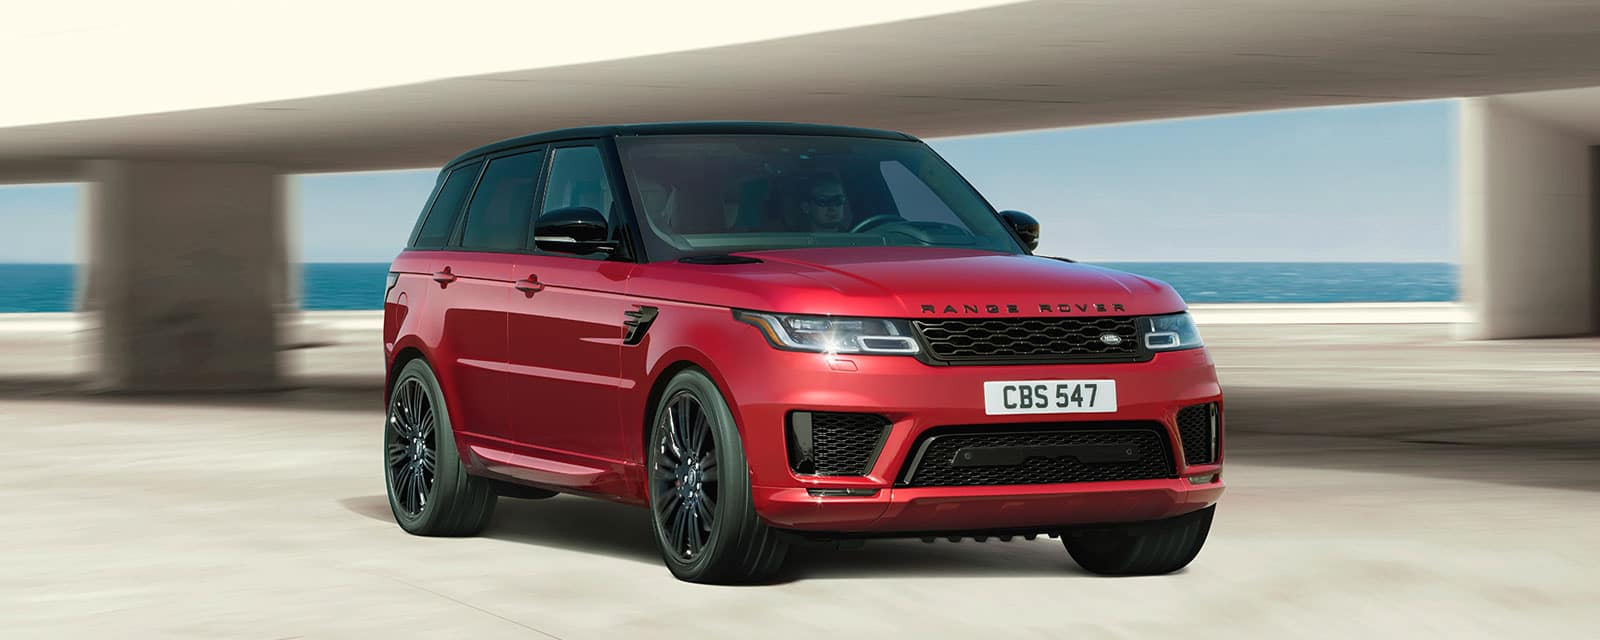 Range Rover Price Msrp Lease Deals Land Rover Freeport